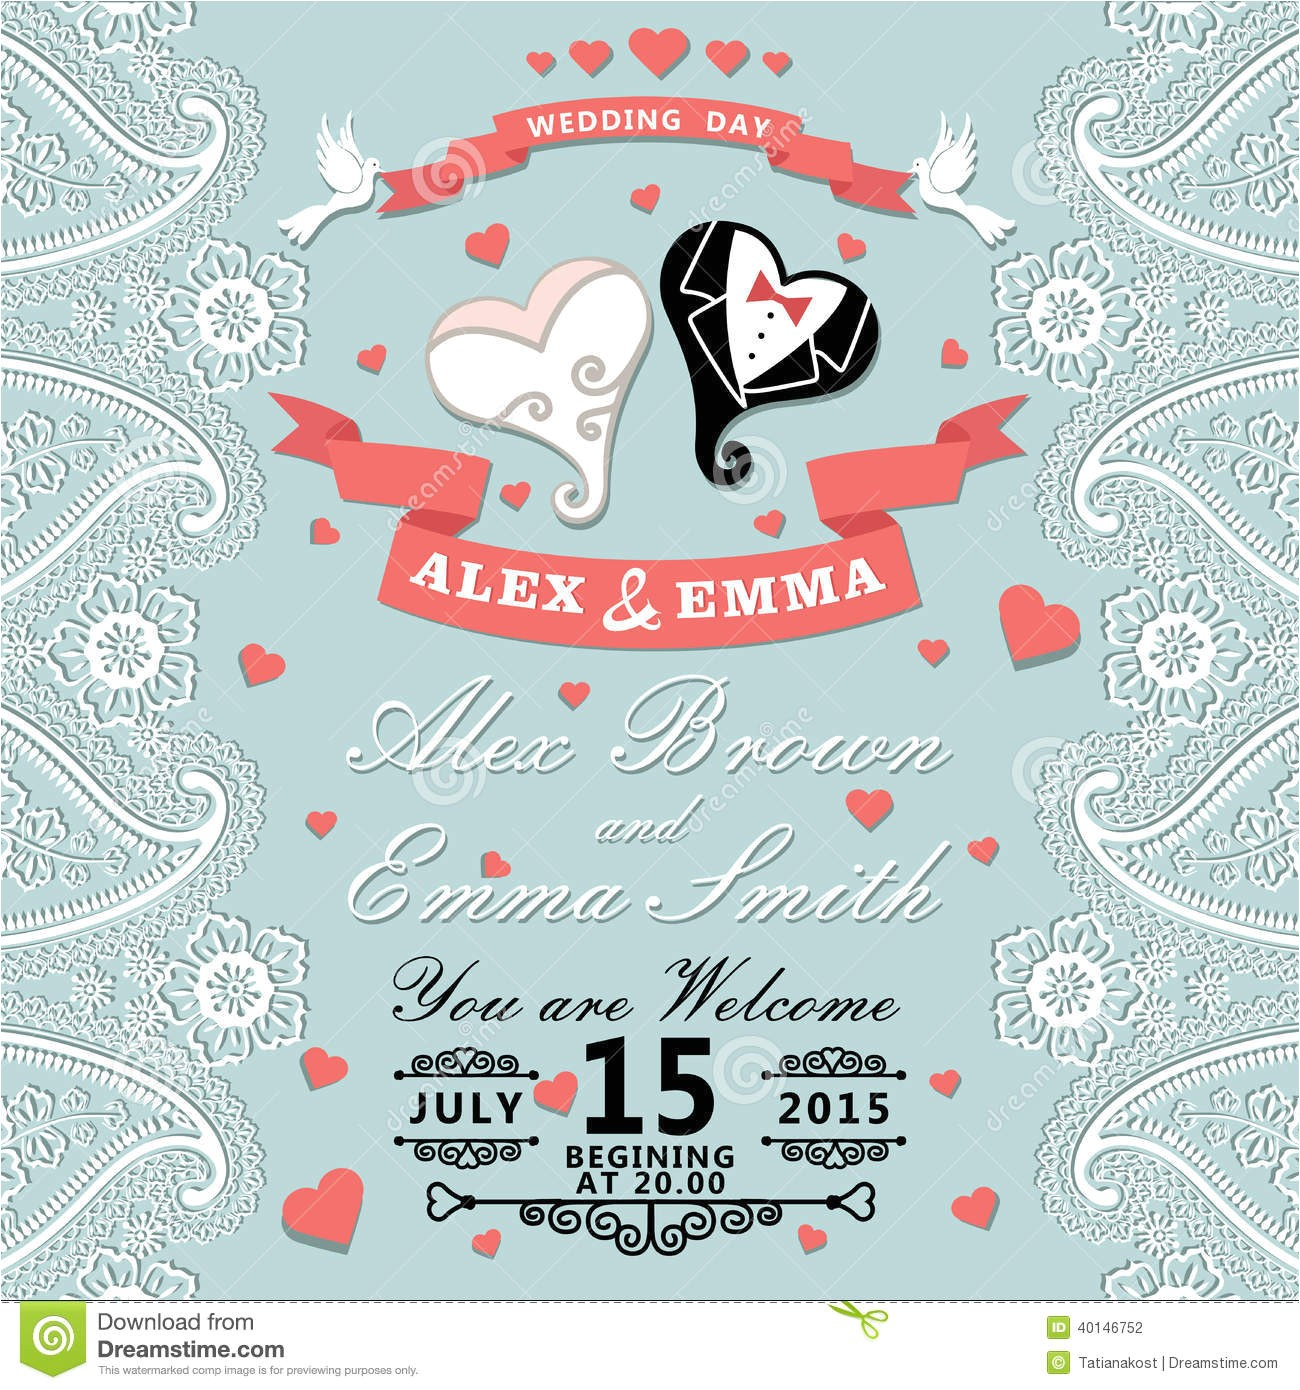 stock photography vintage wedding invitation paisley border cartoon wedding h hearts retro style vignettes ribbon pigeons imitation lace image40146752